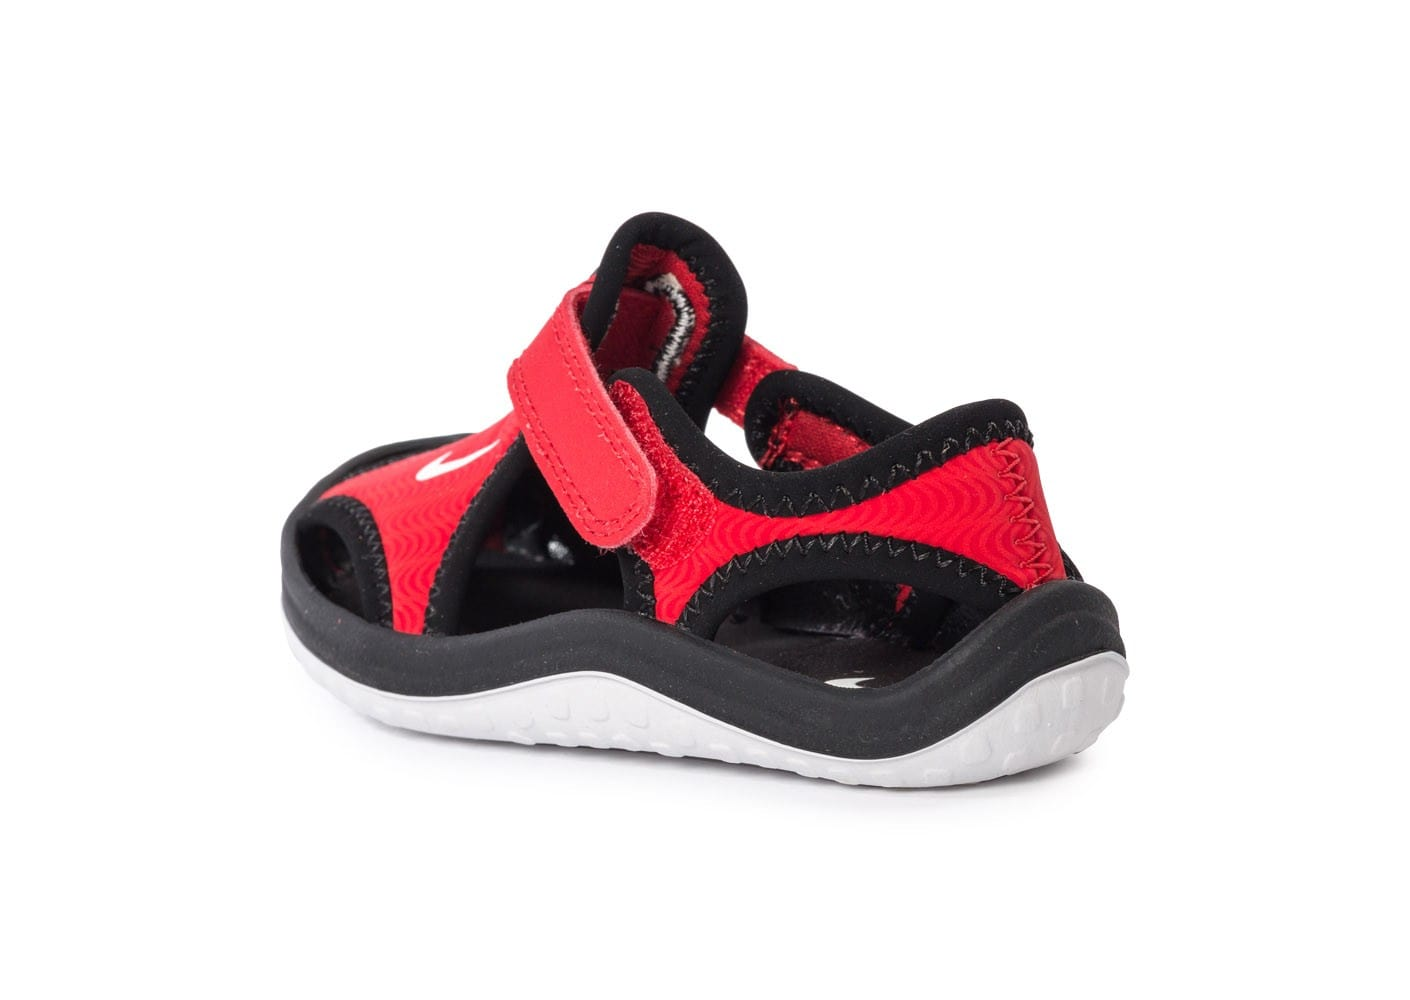 67702c2e6d8 ... chaussures nike sunray protect bebe rouge vue arriere